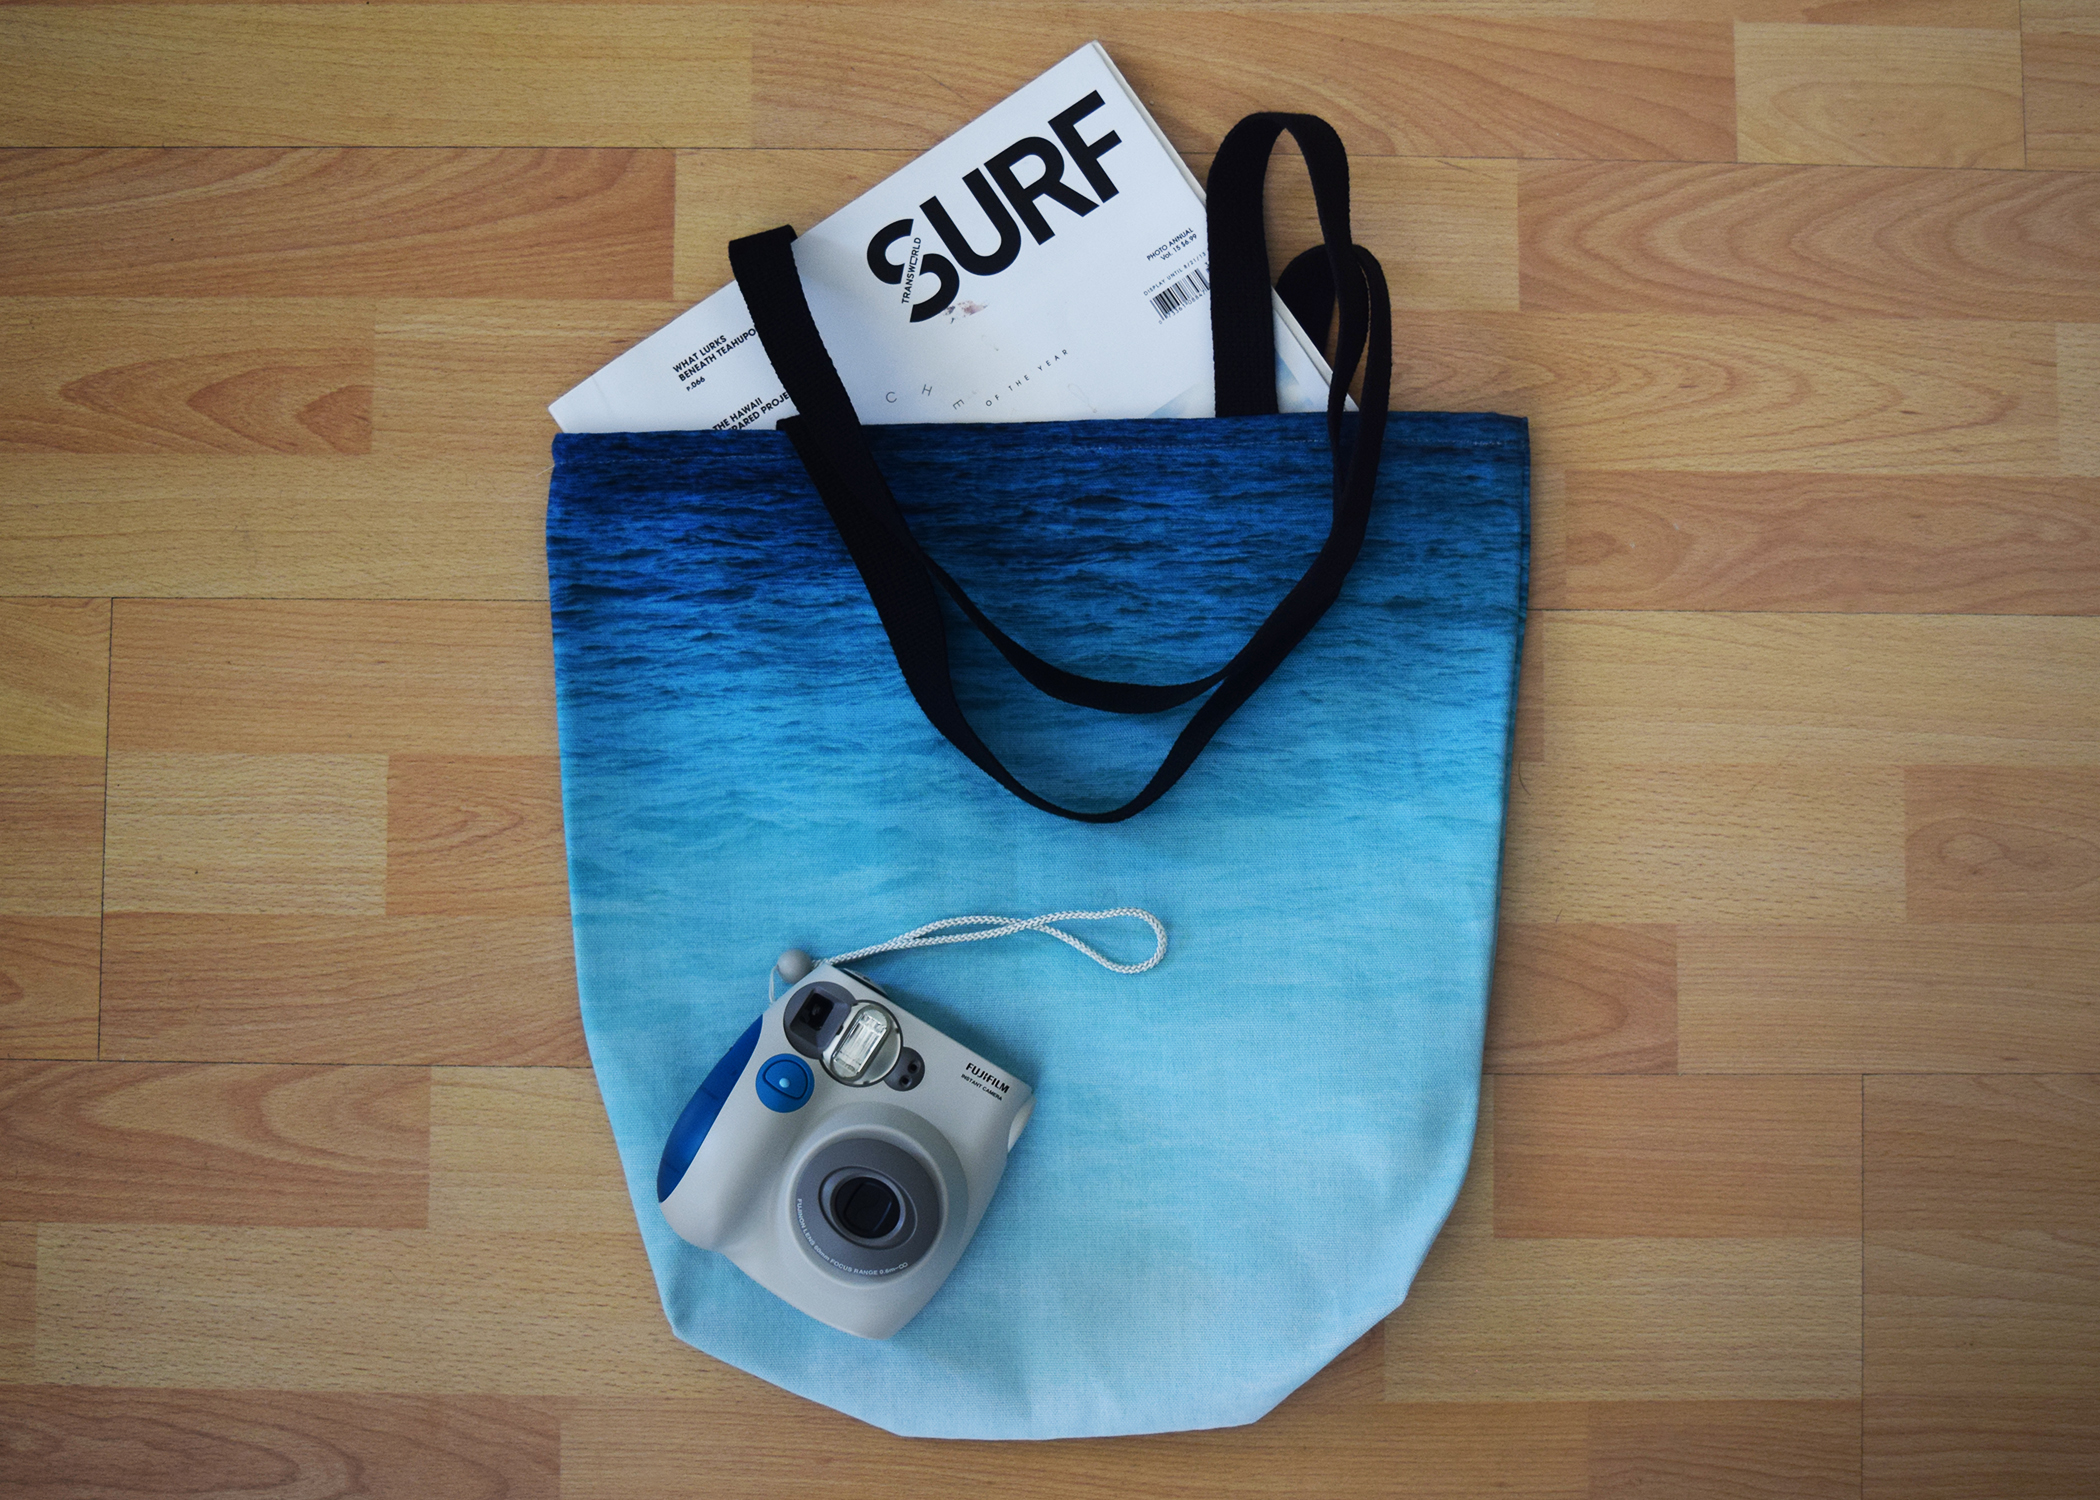 grand cayman waters tote on floor with magazines and instax camera.jpg